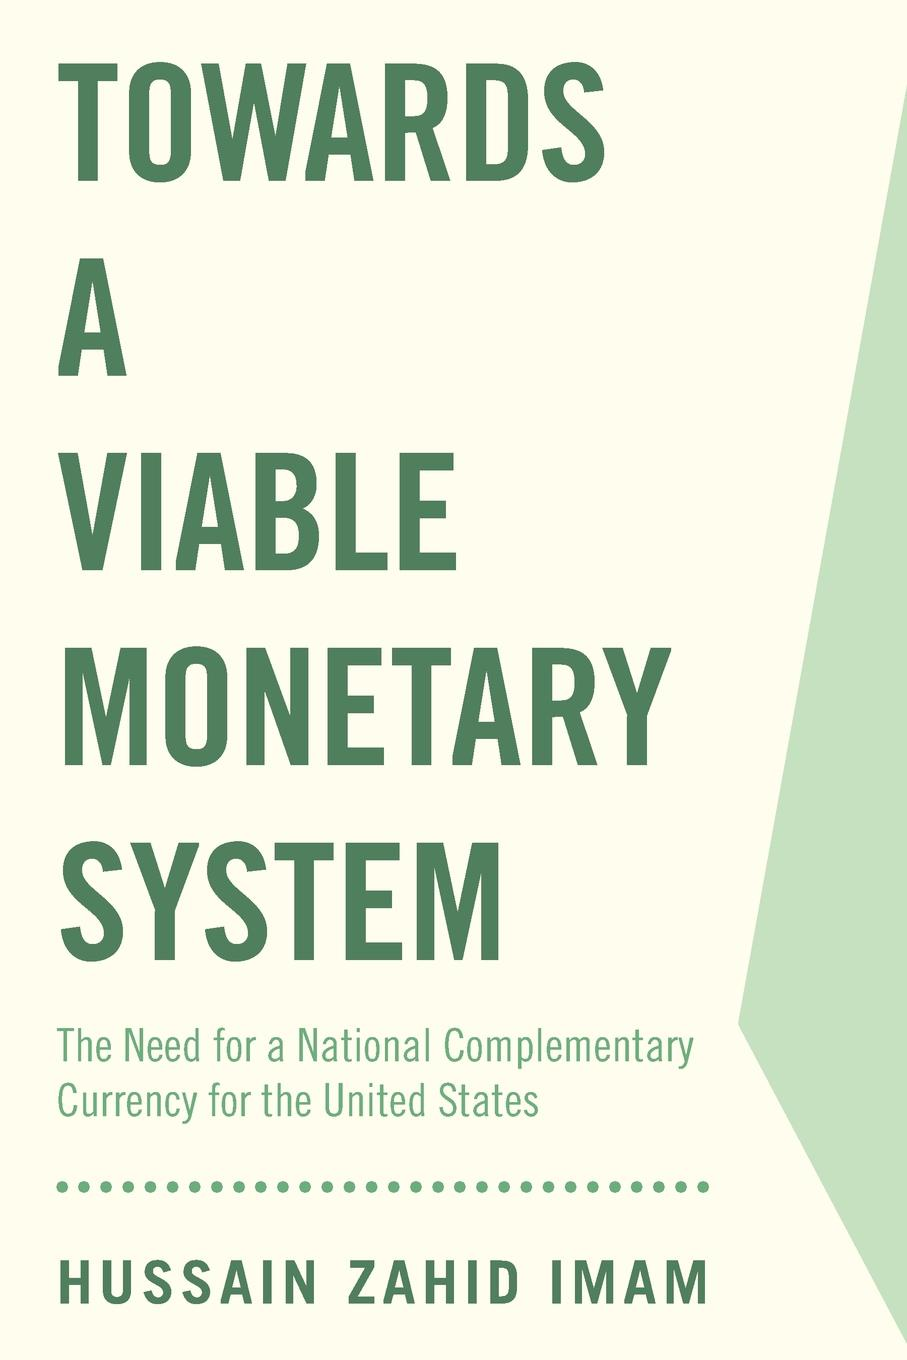 Hussain Zahid Imam Towards a Viable Monetary System. The Need for a National Complementary Currency for the United States